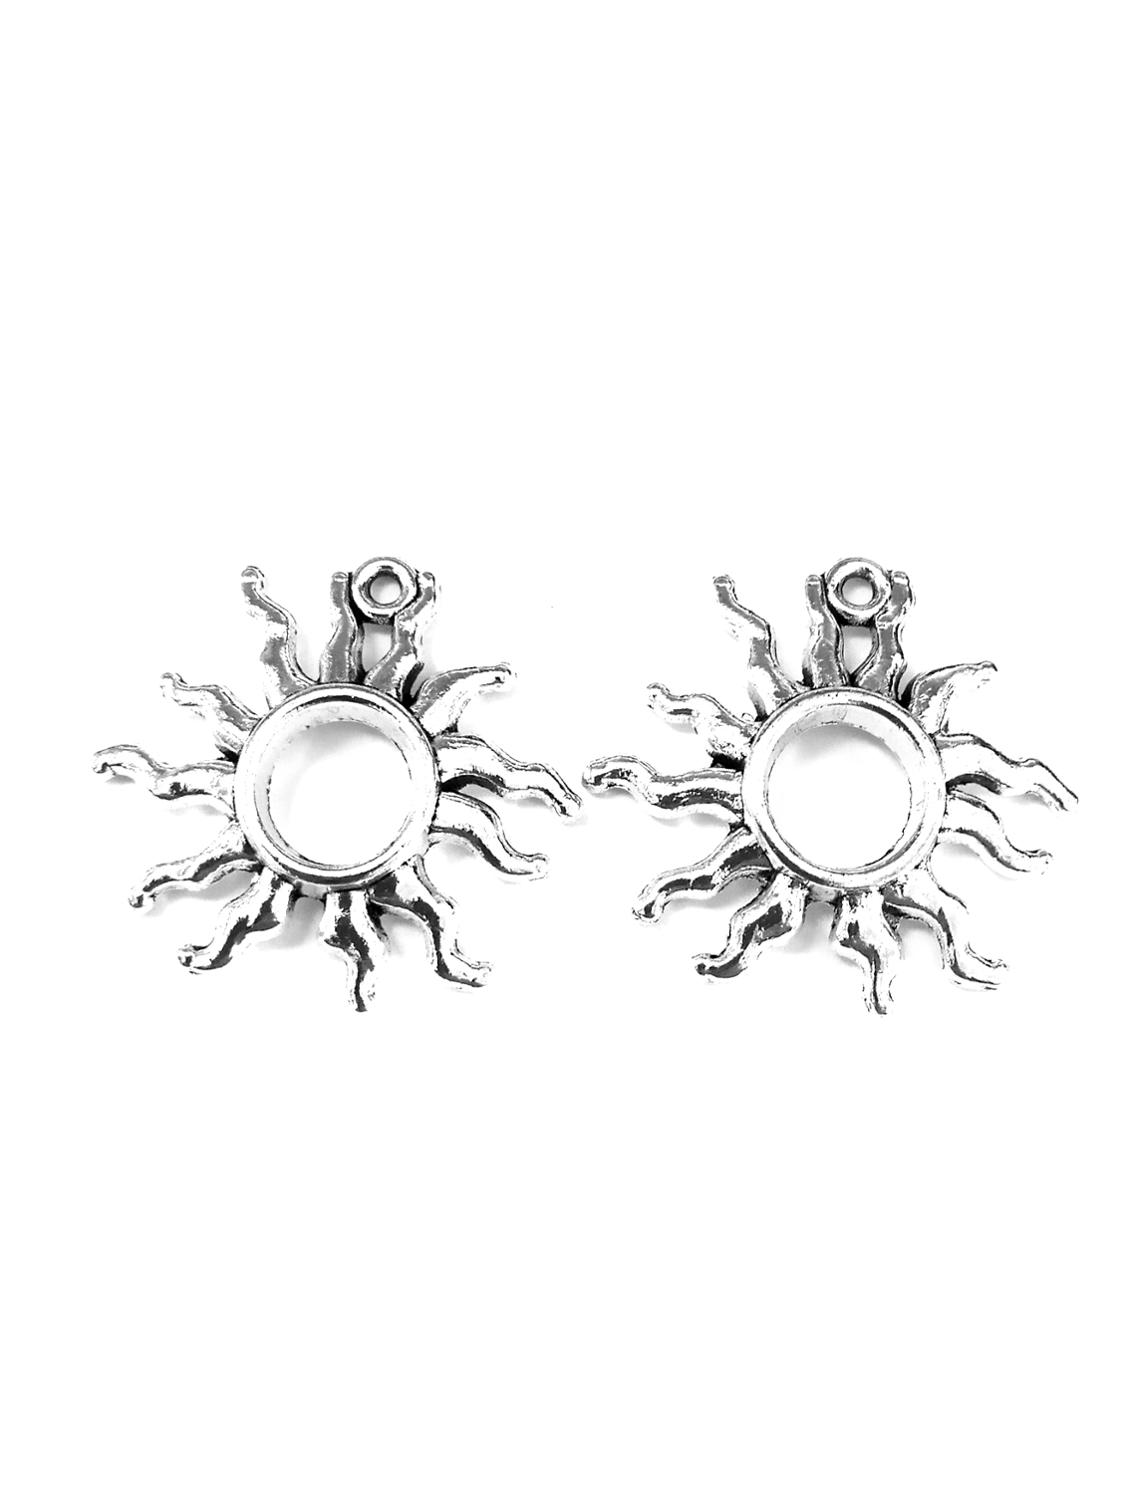 10pcs Sun Charms Pendant 25x26mm Antique Silver Ornament Accessories Jewelry Making Craft Base Material